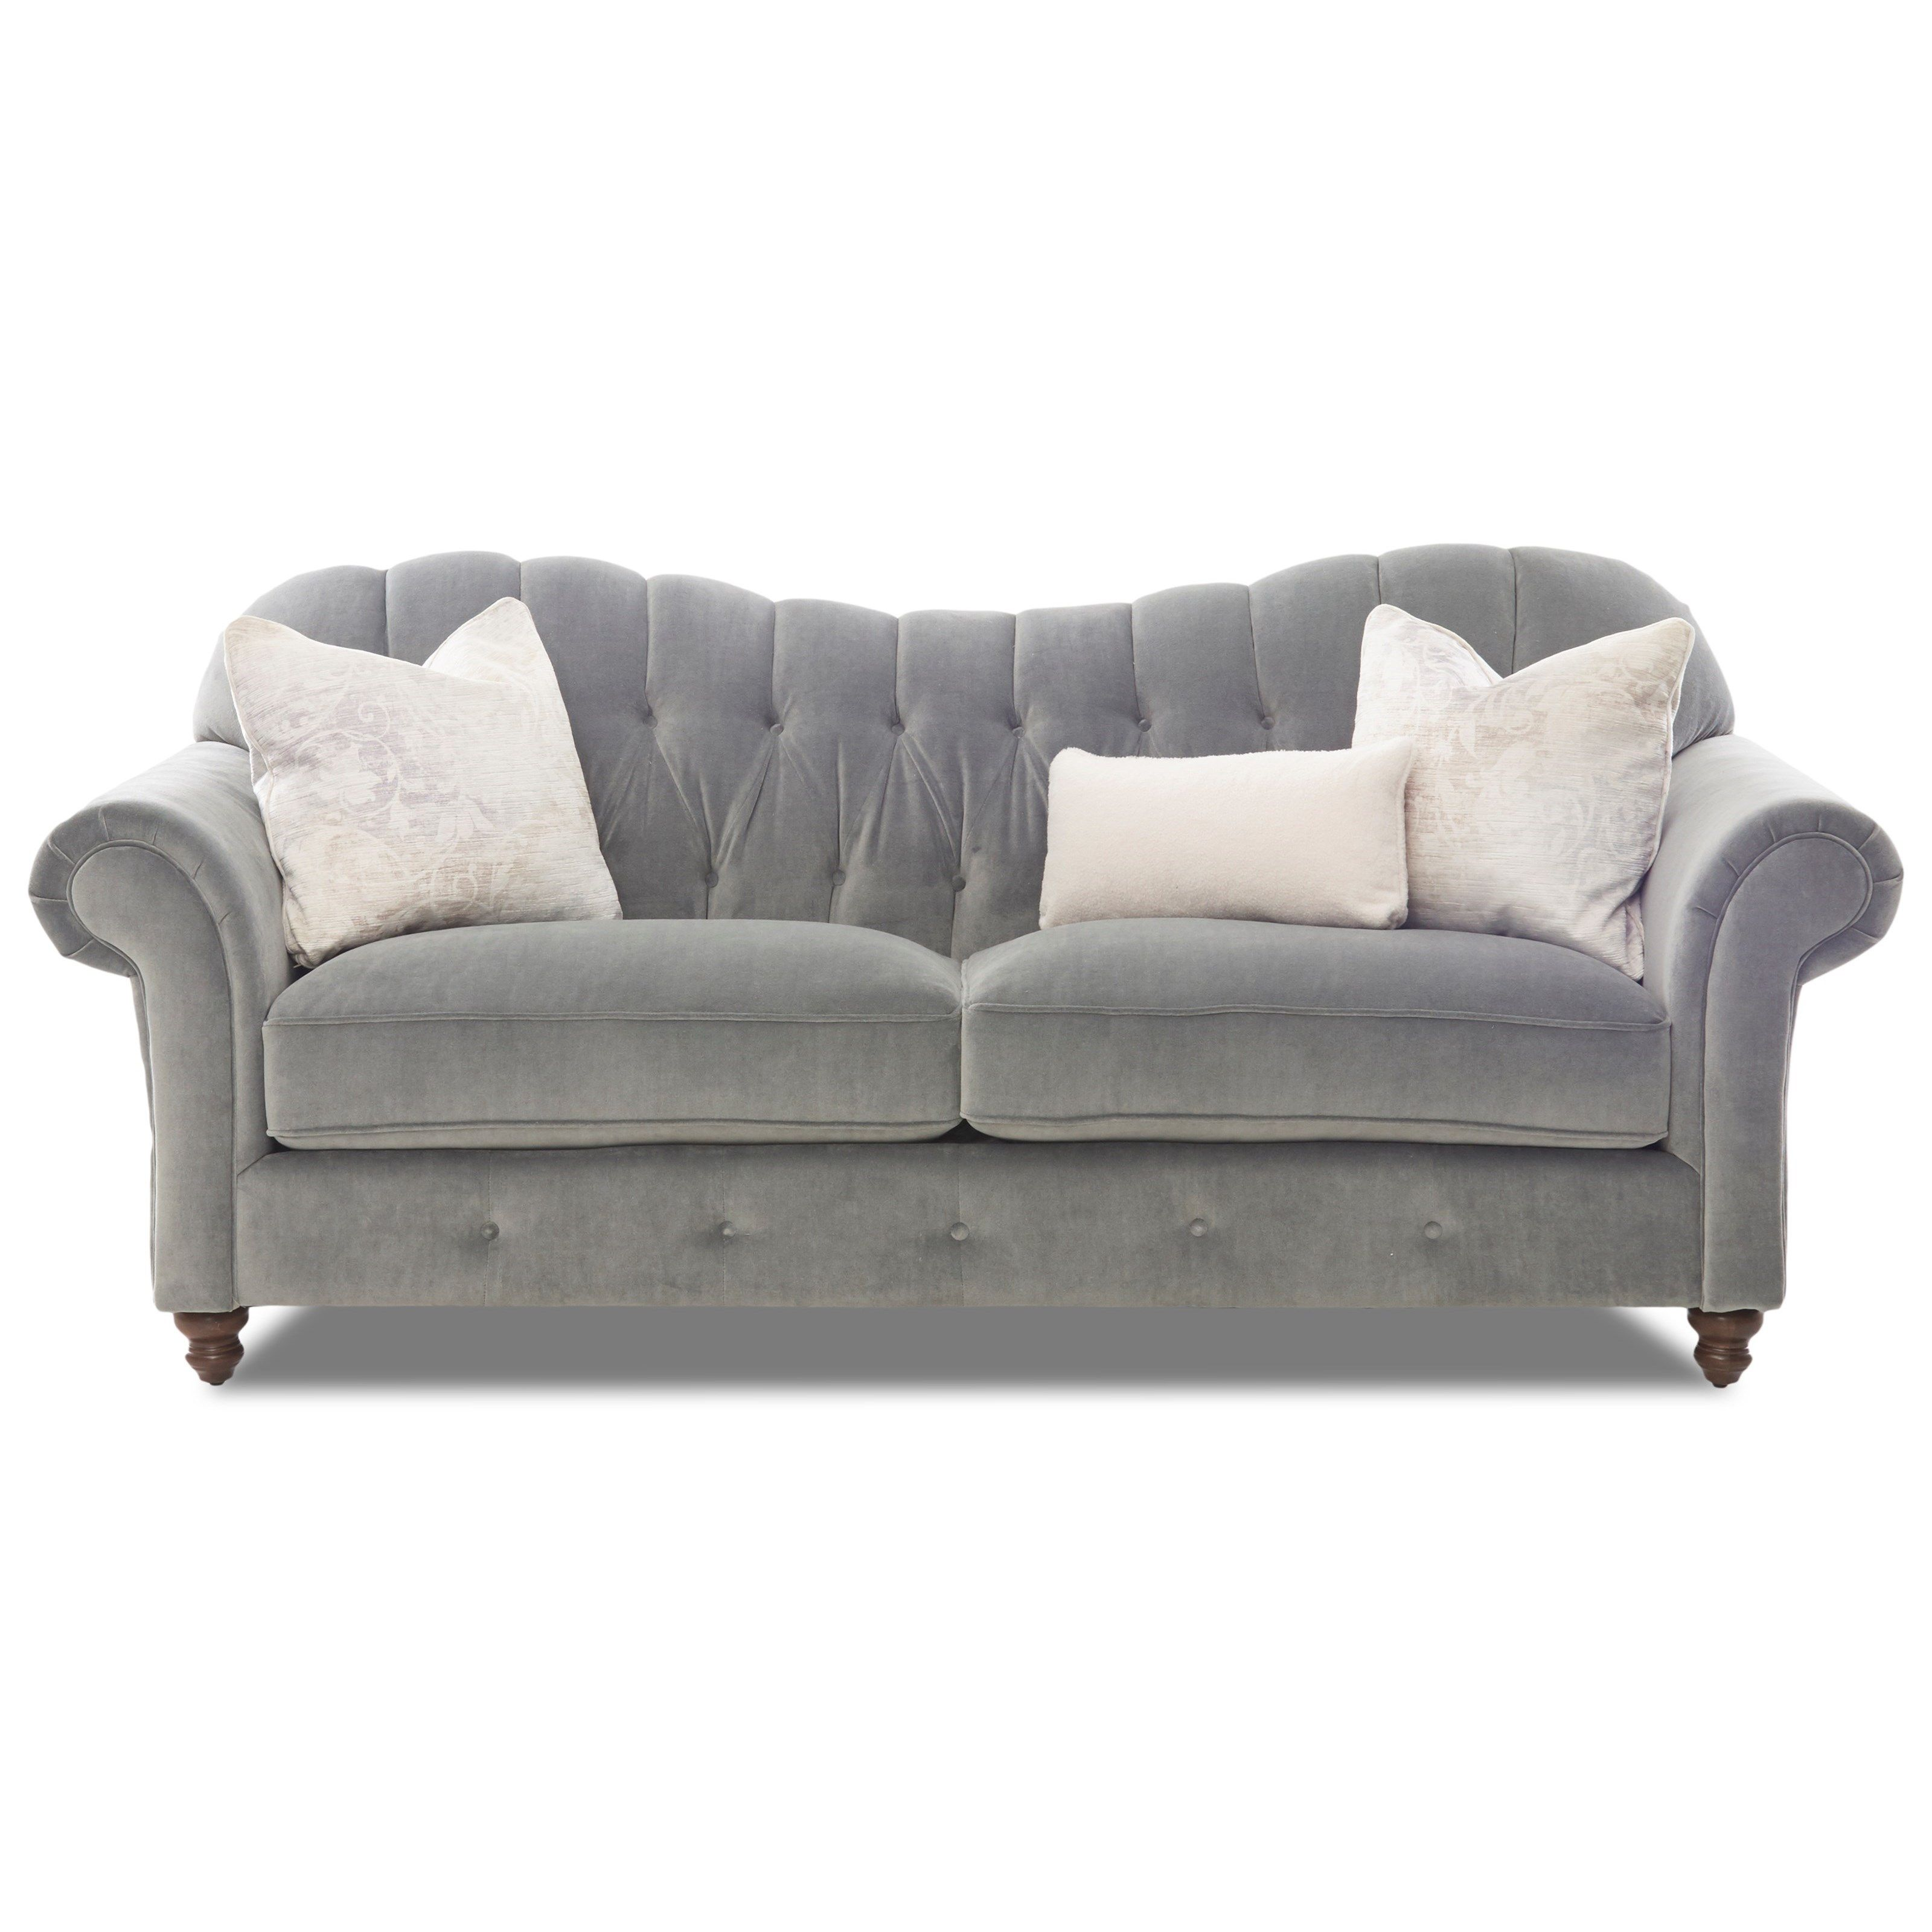 Serta Upholstery Wheatfield Sofa Shelby Sofa No Nails By Klaussner Couches Couch Sofa Furniture